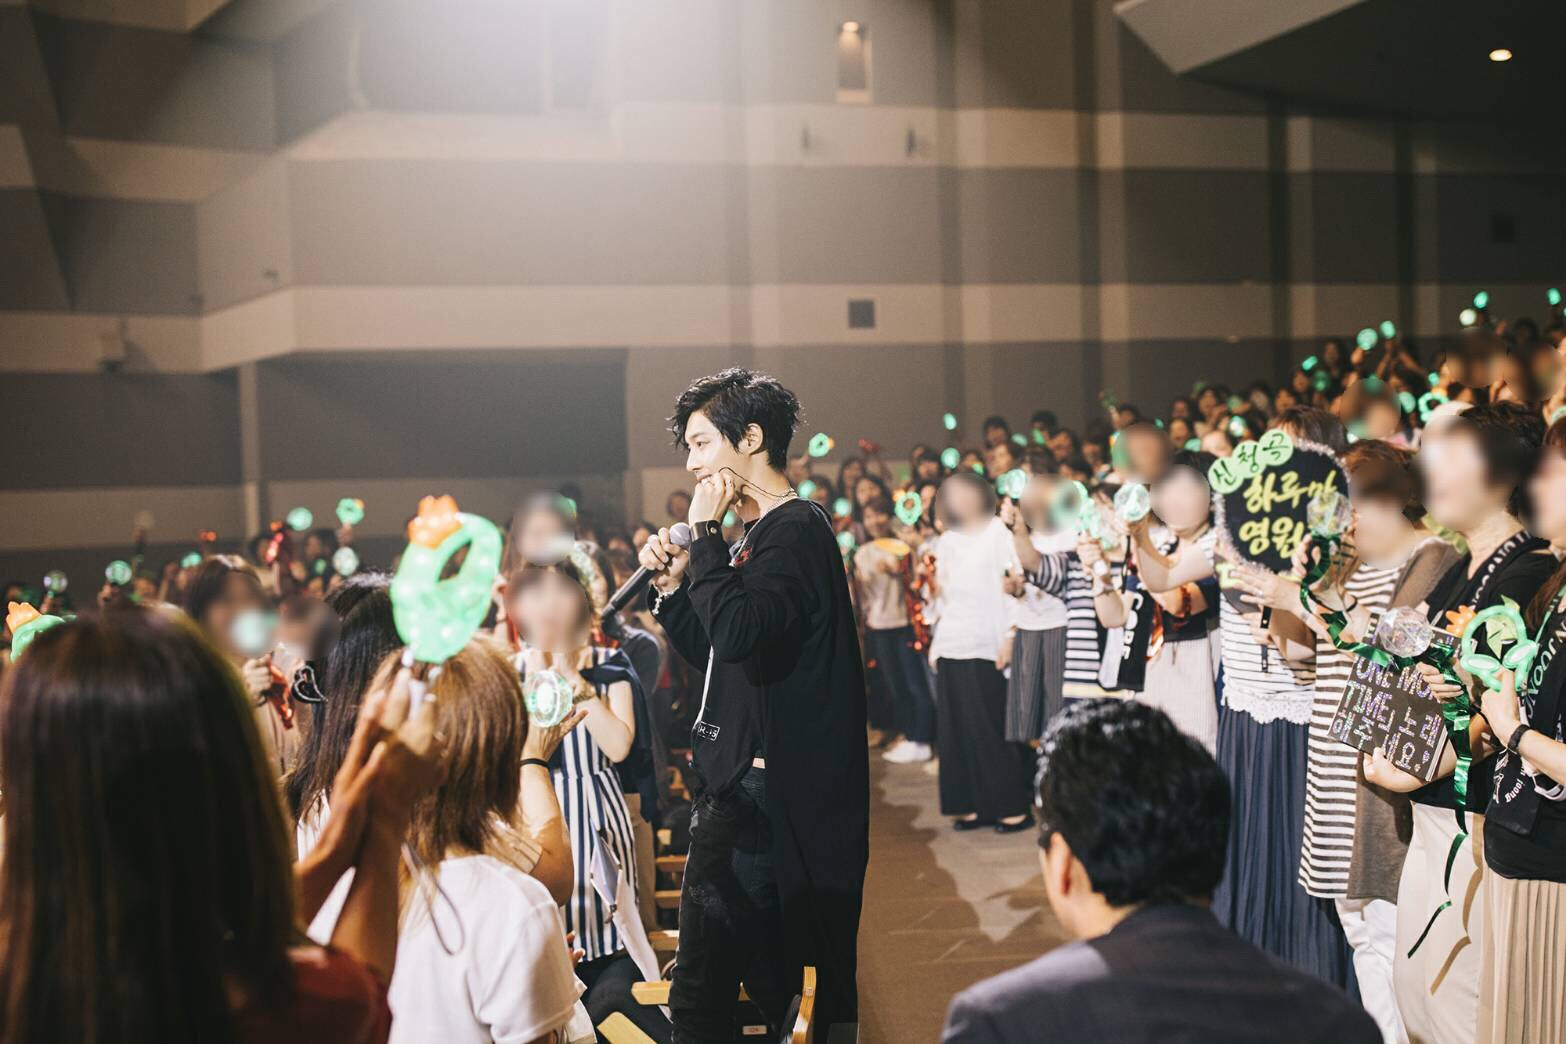 [Photo] Kim Hyun Joong Official Line Blog Update [2017.07.17]